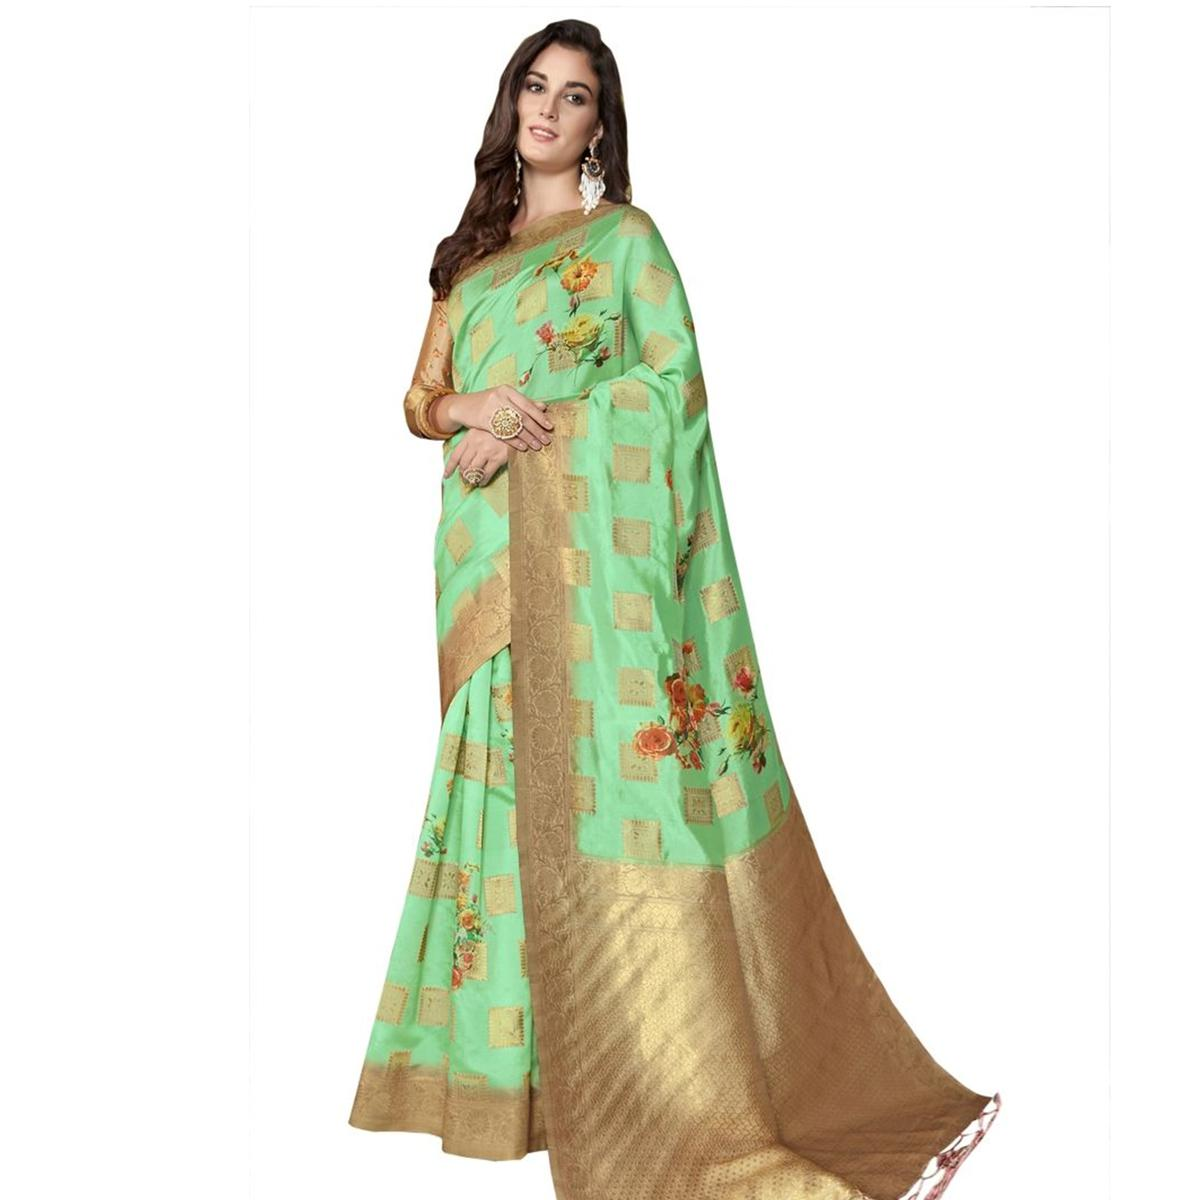 Charming Green Colored Festive Wear Woven Jacquard Silk Saree With Tassels